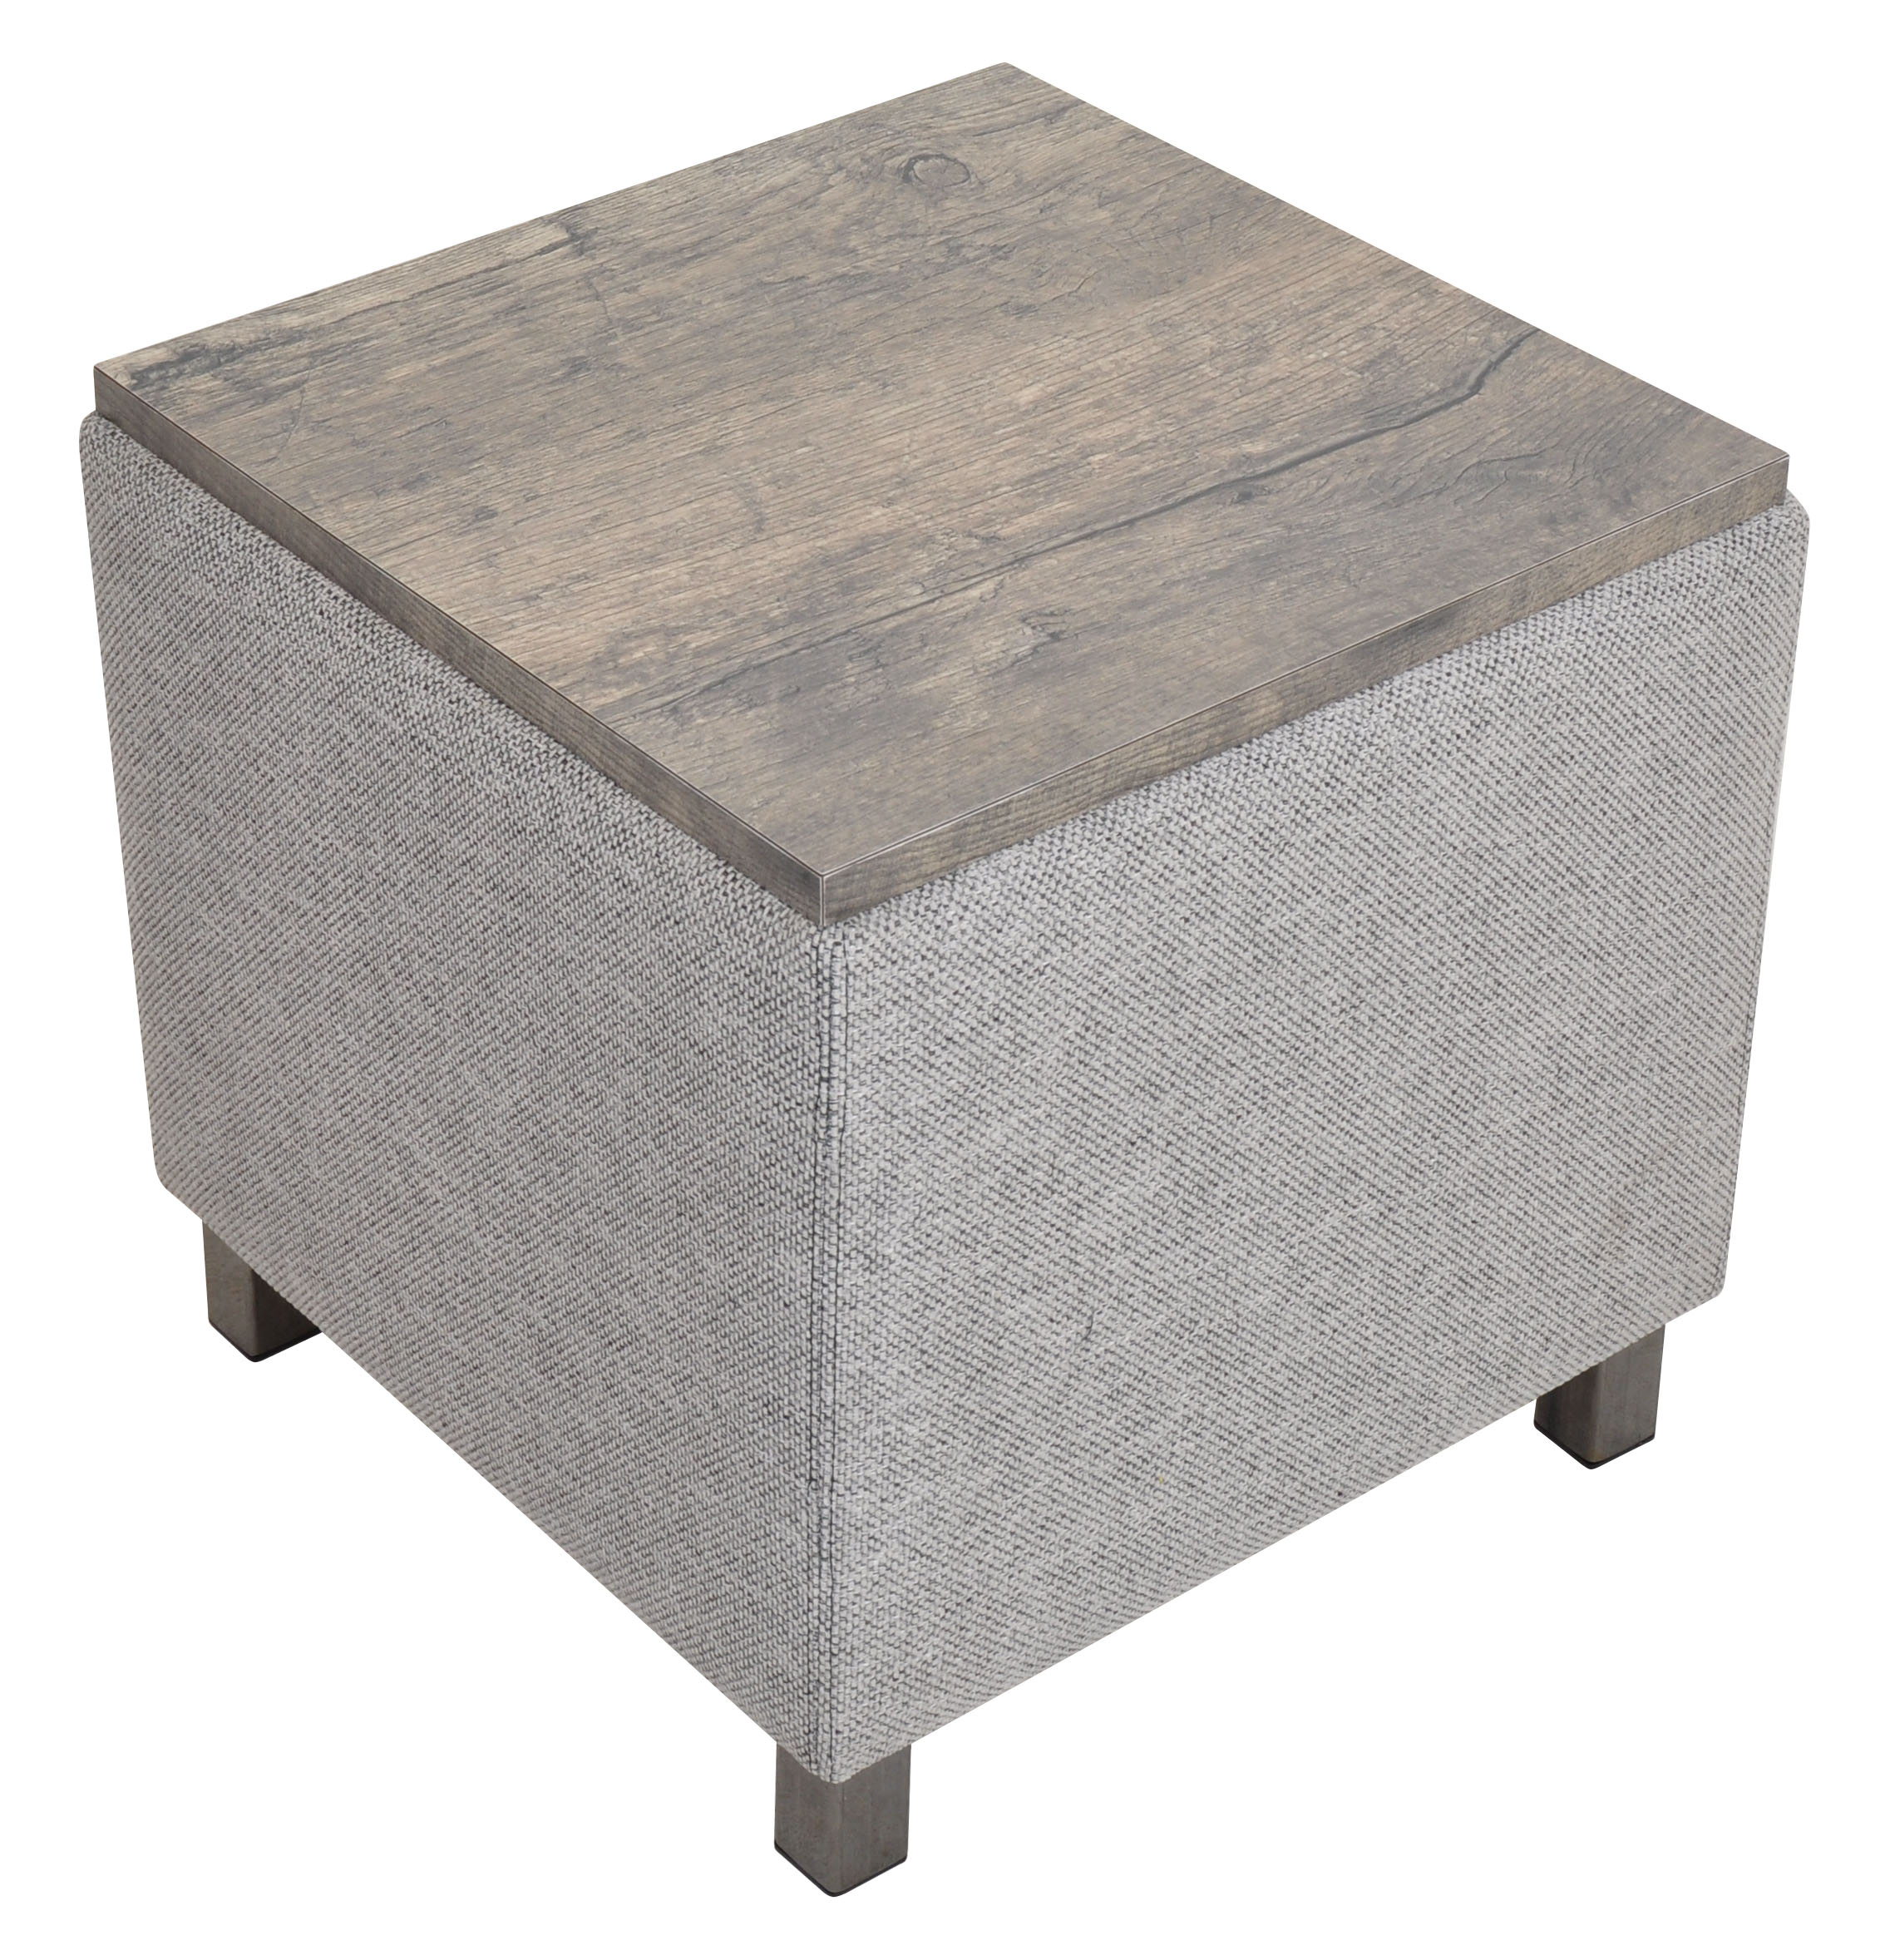 Dock Square Table